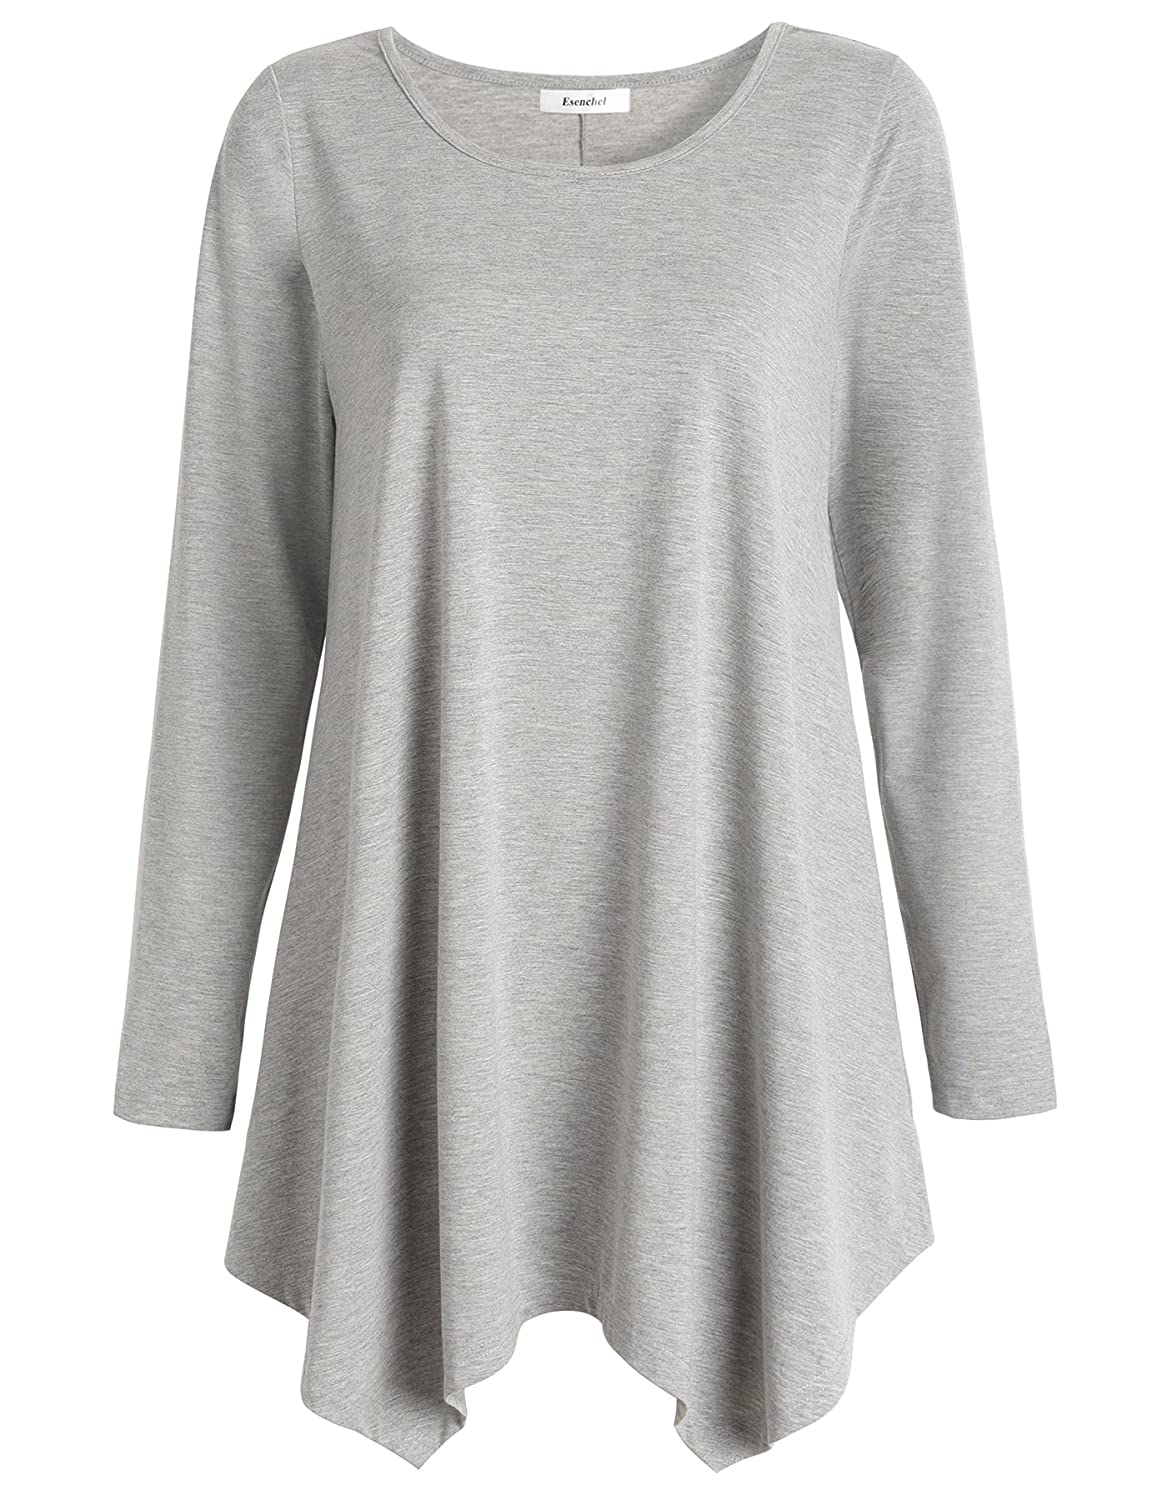 6ab0625551ed2 Top 10 wholesale Tops To Wear With Leggings And Boots - Chinabrands.com